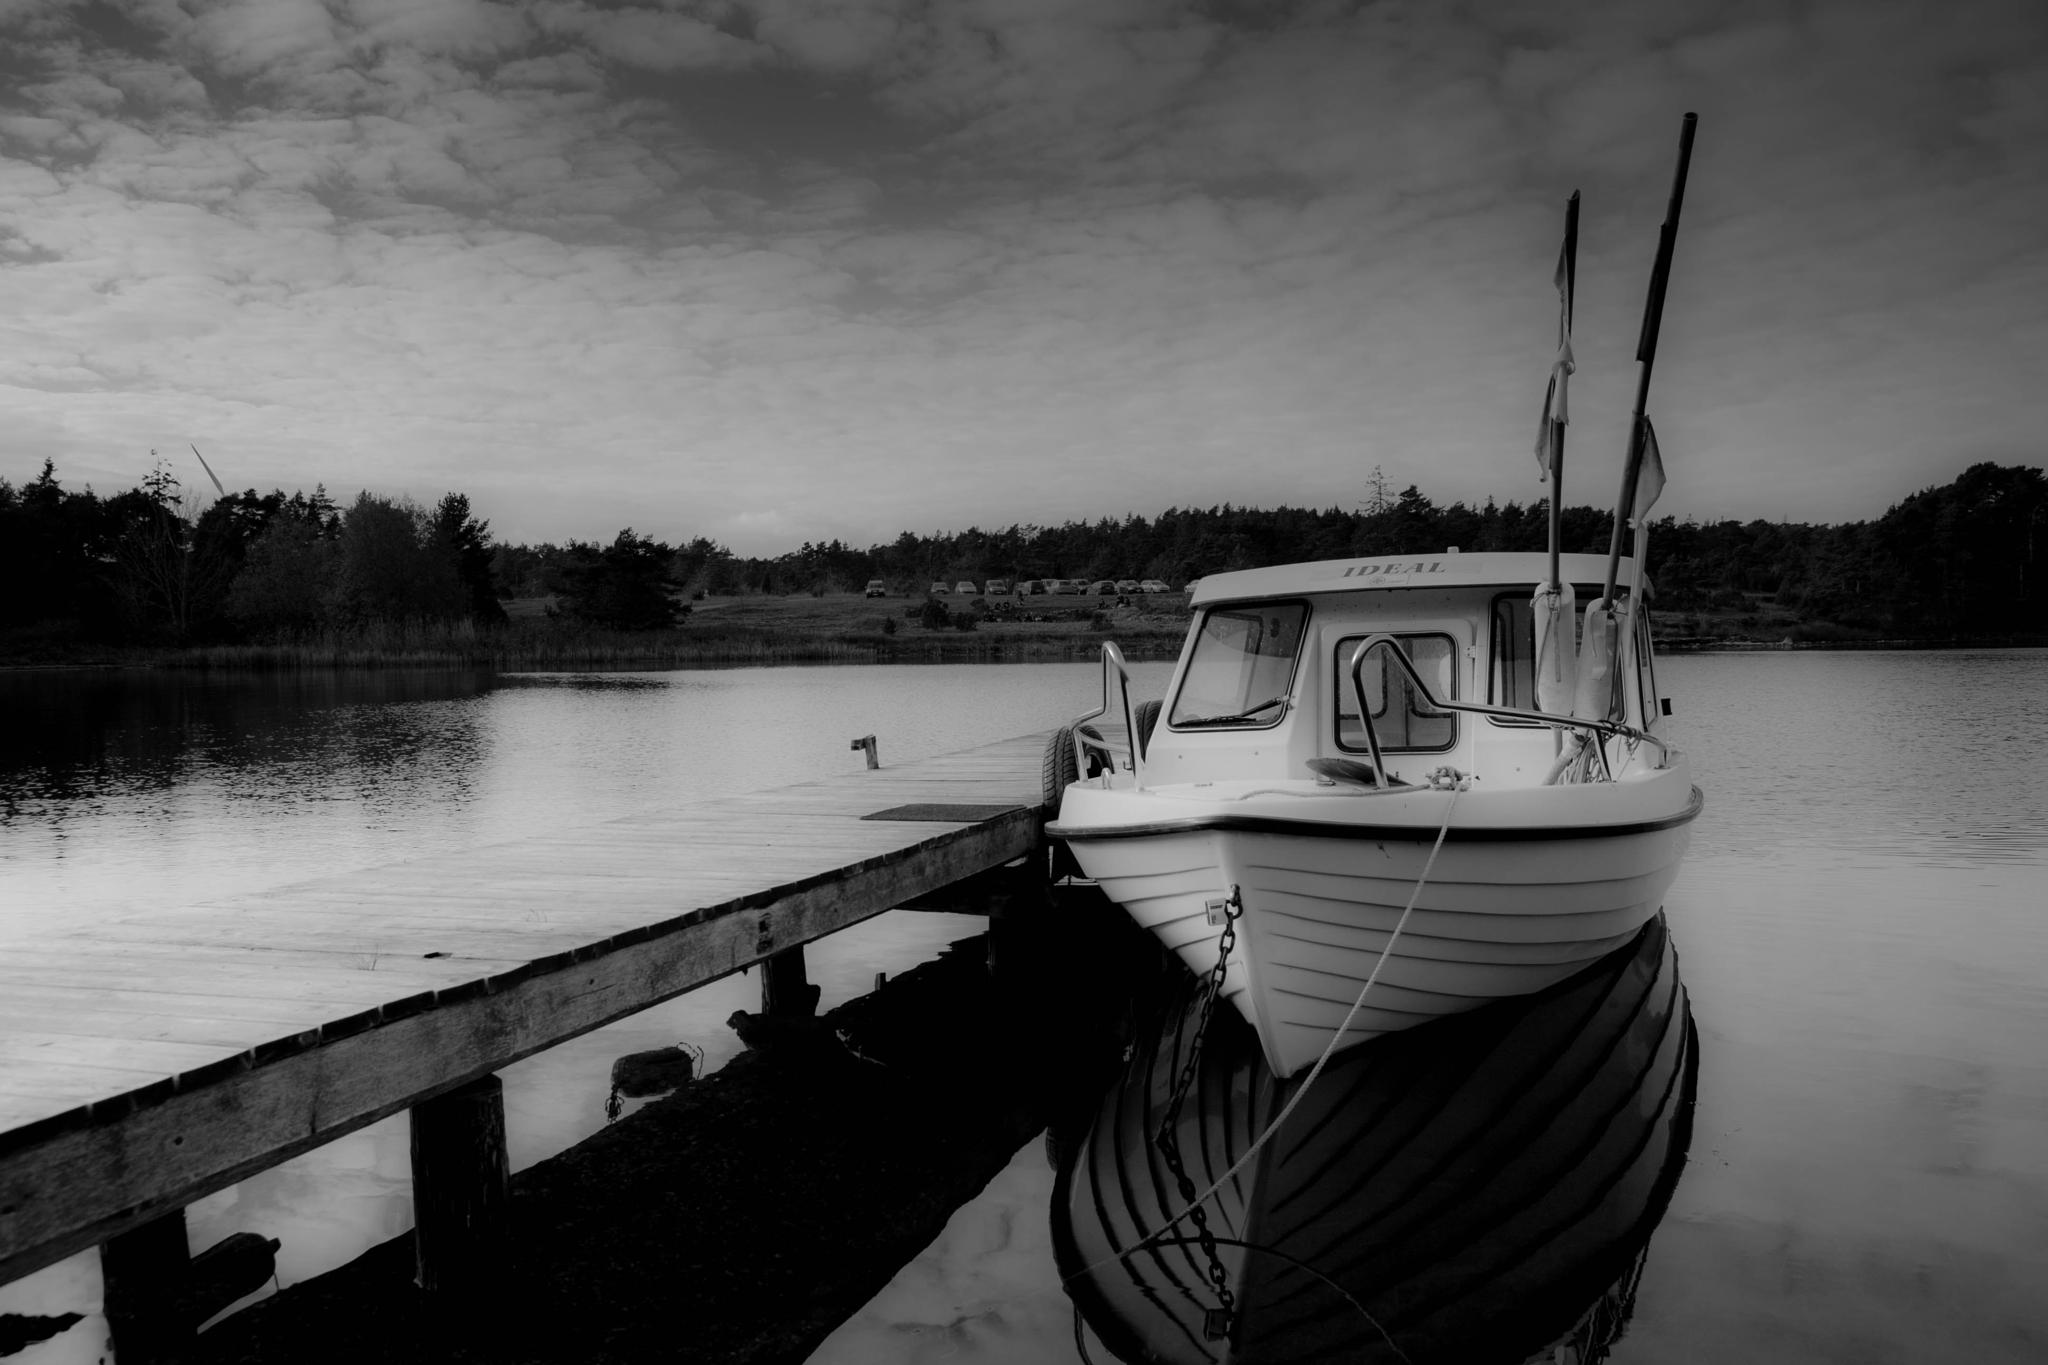 Boat at the harbour by Olof Nysten